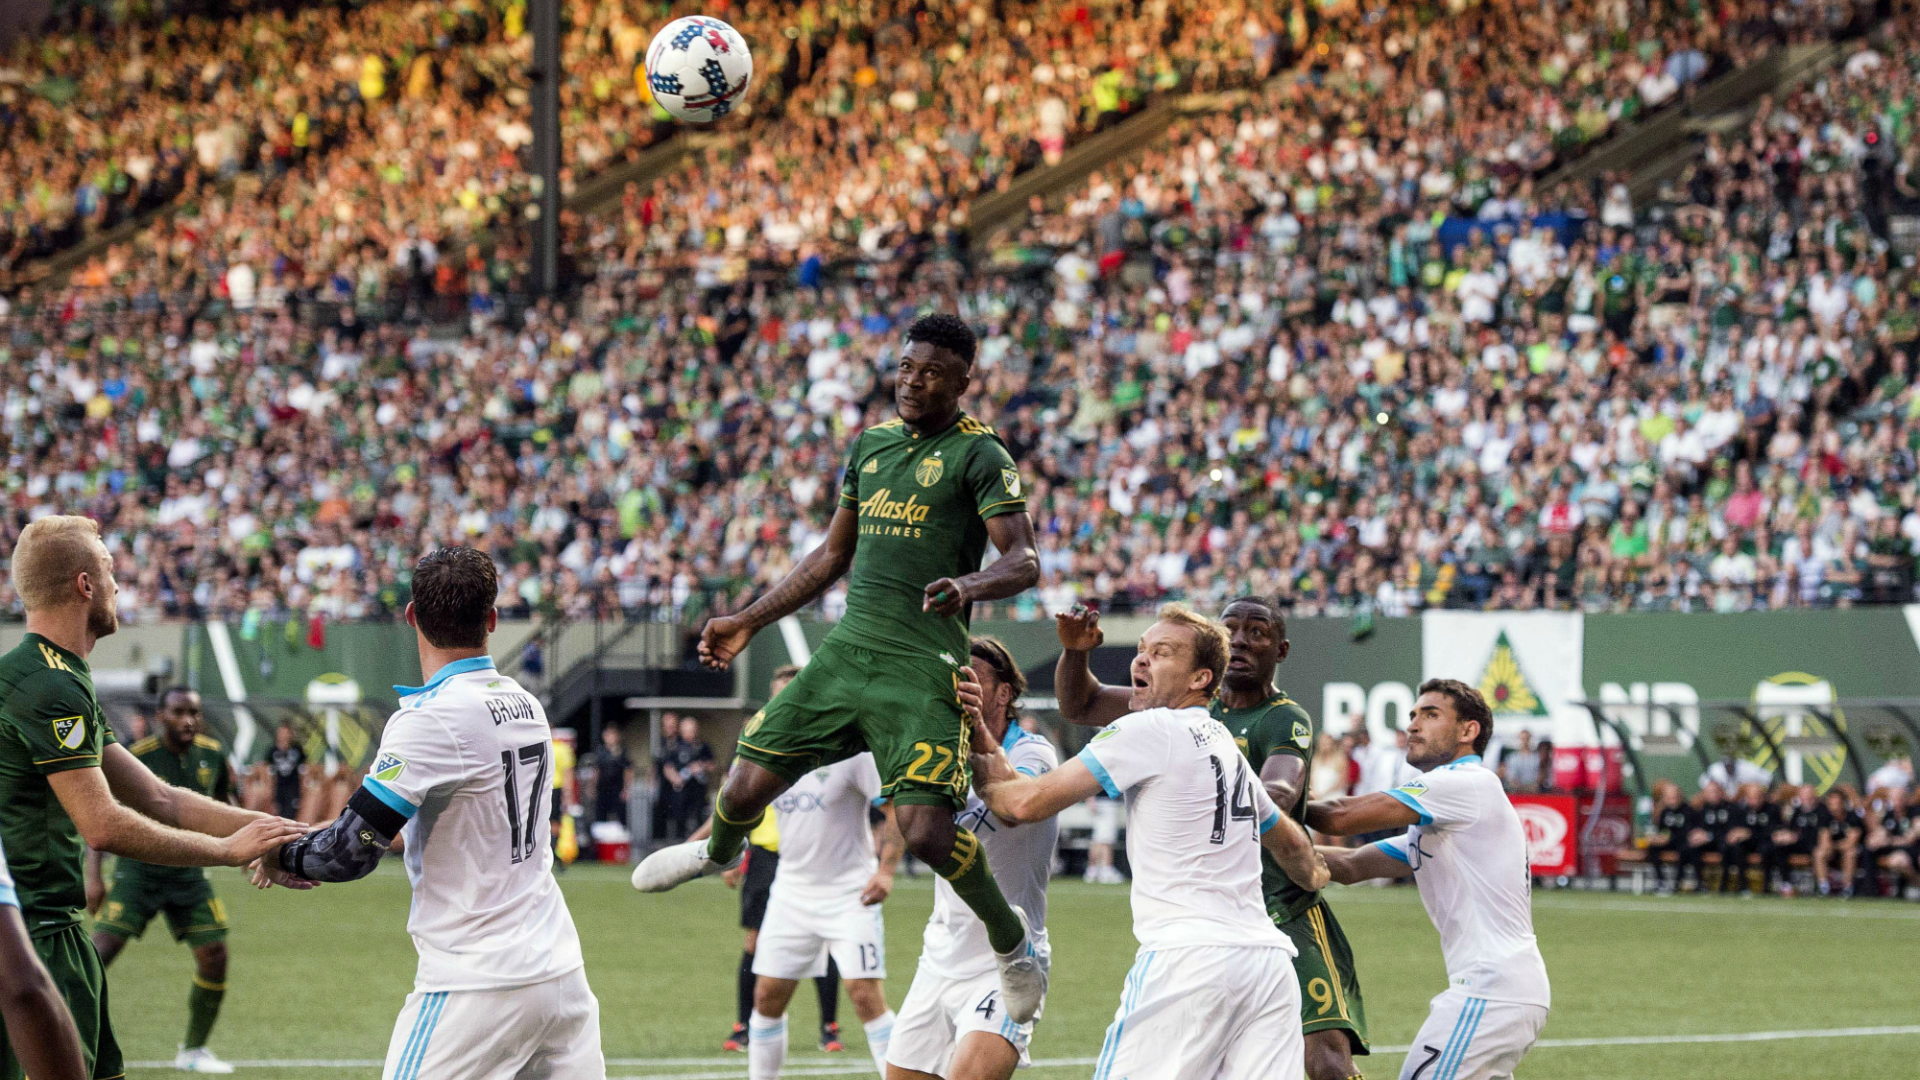 Dairon Asprilla Portland Timbers Seattle Sounders